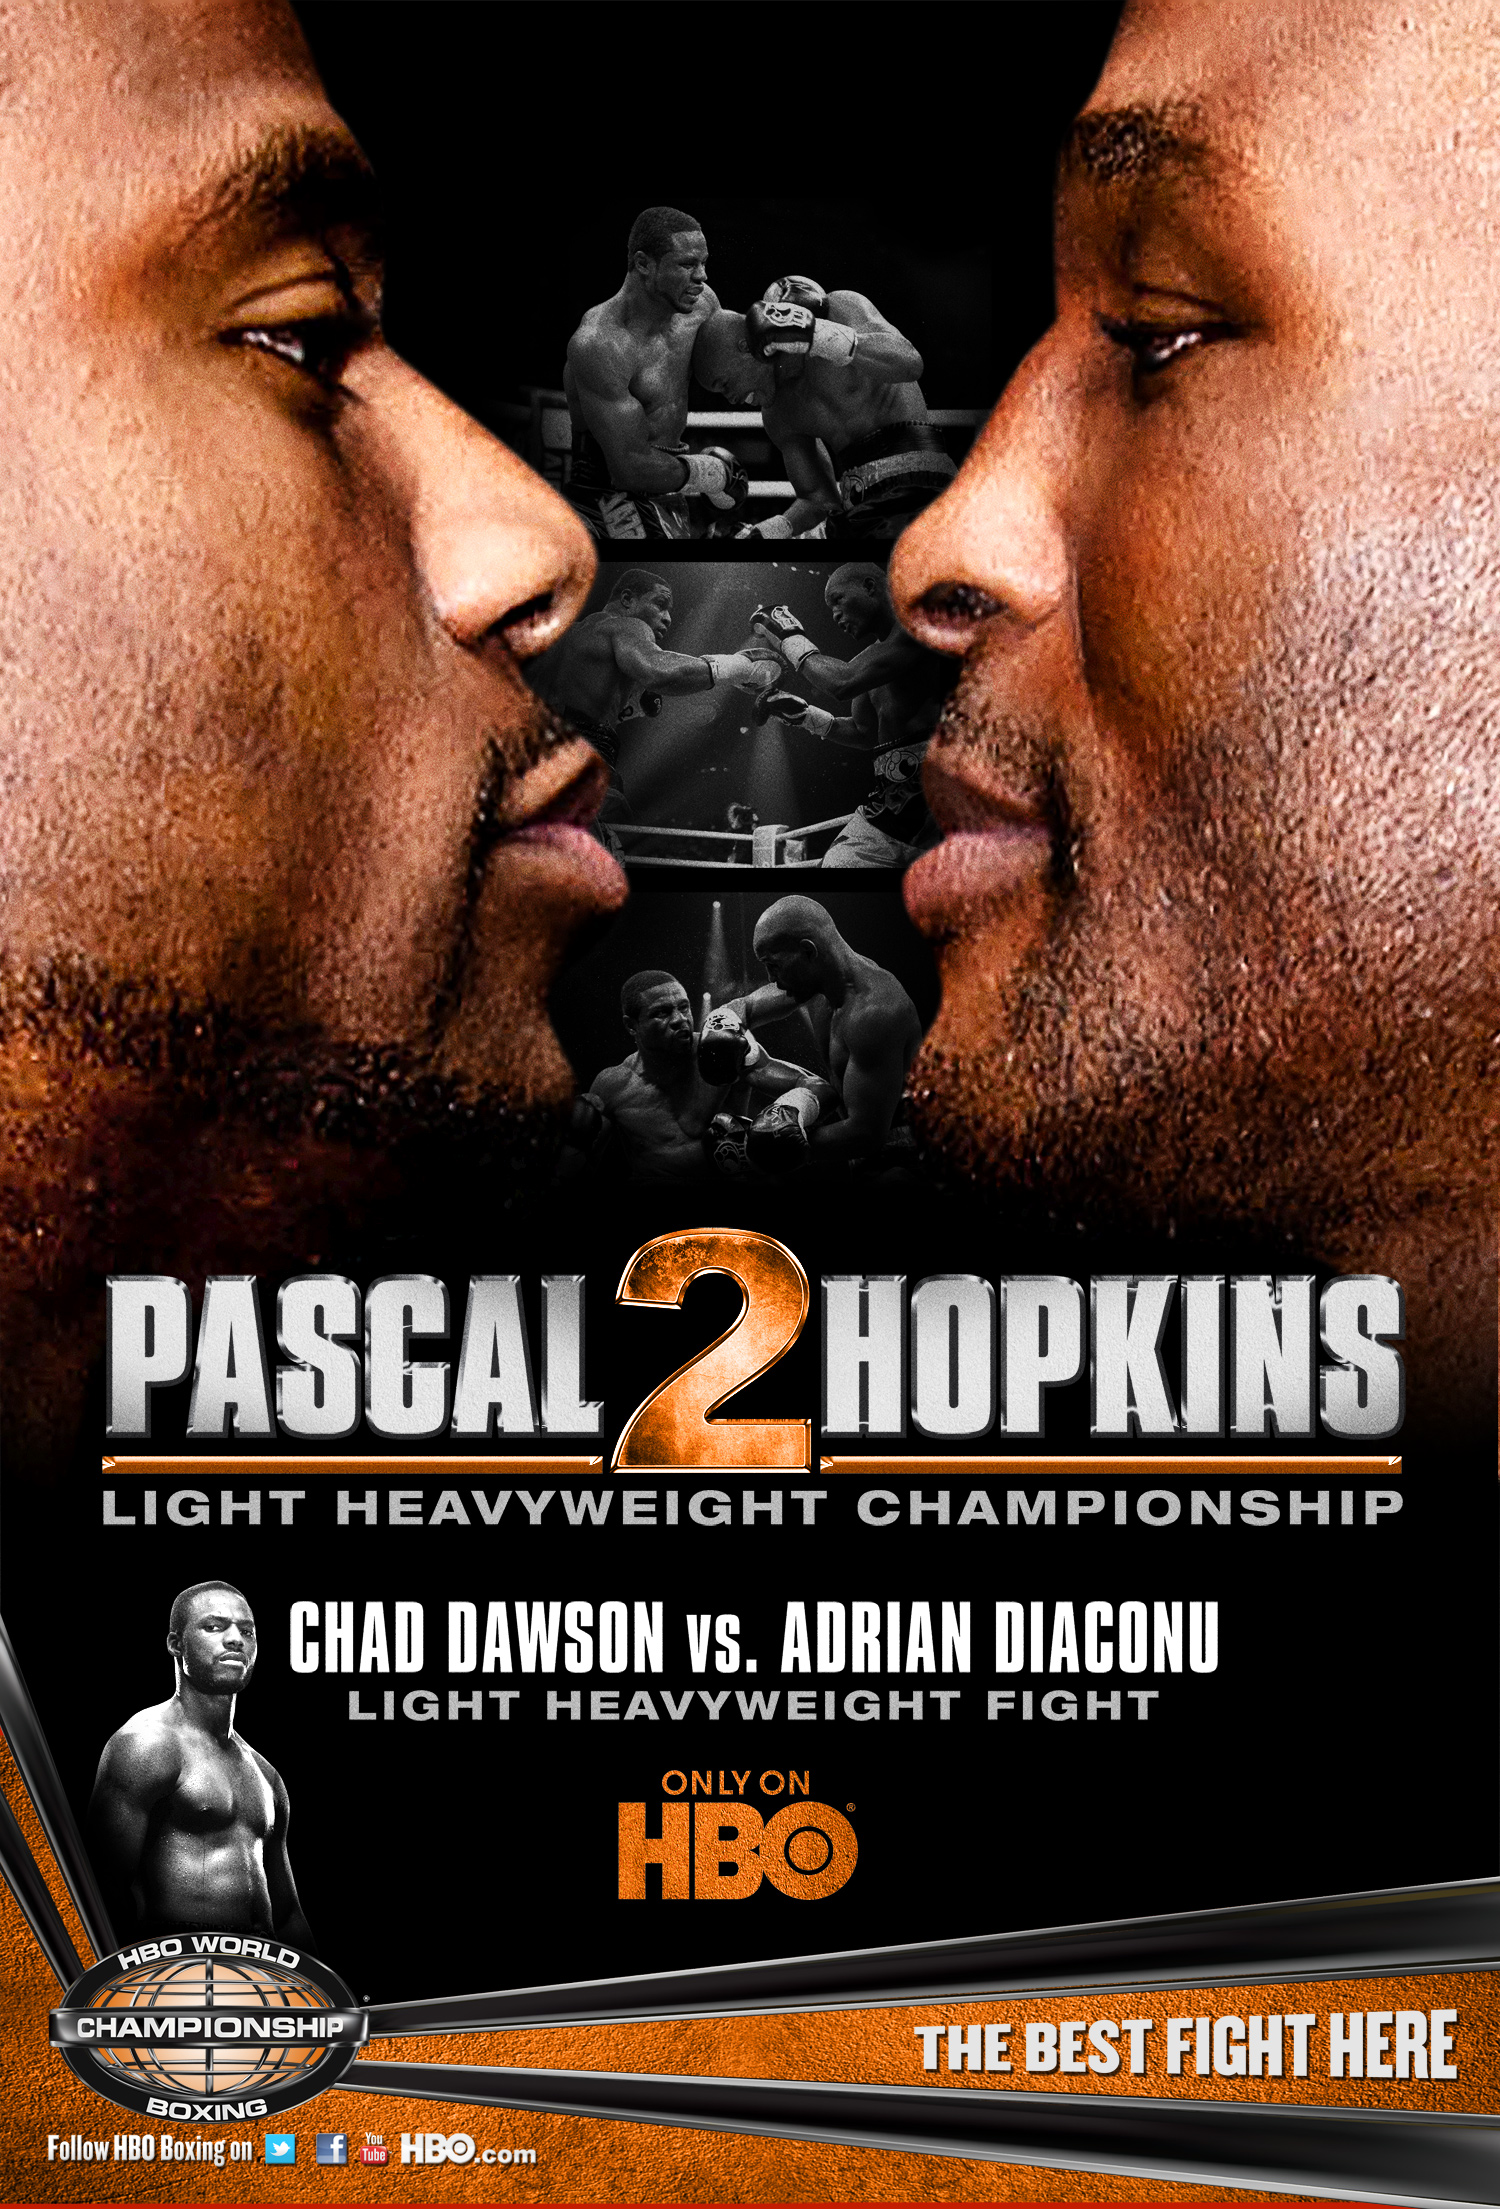 Jean Pascal vs. Bernard Hopkins 2